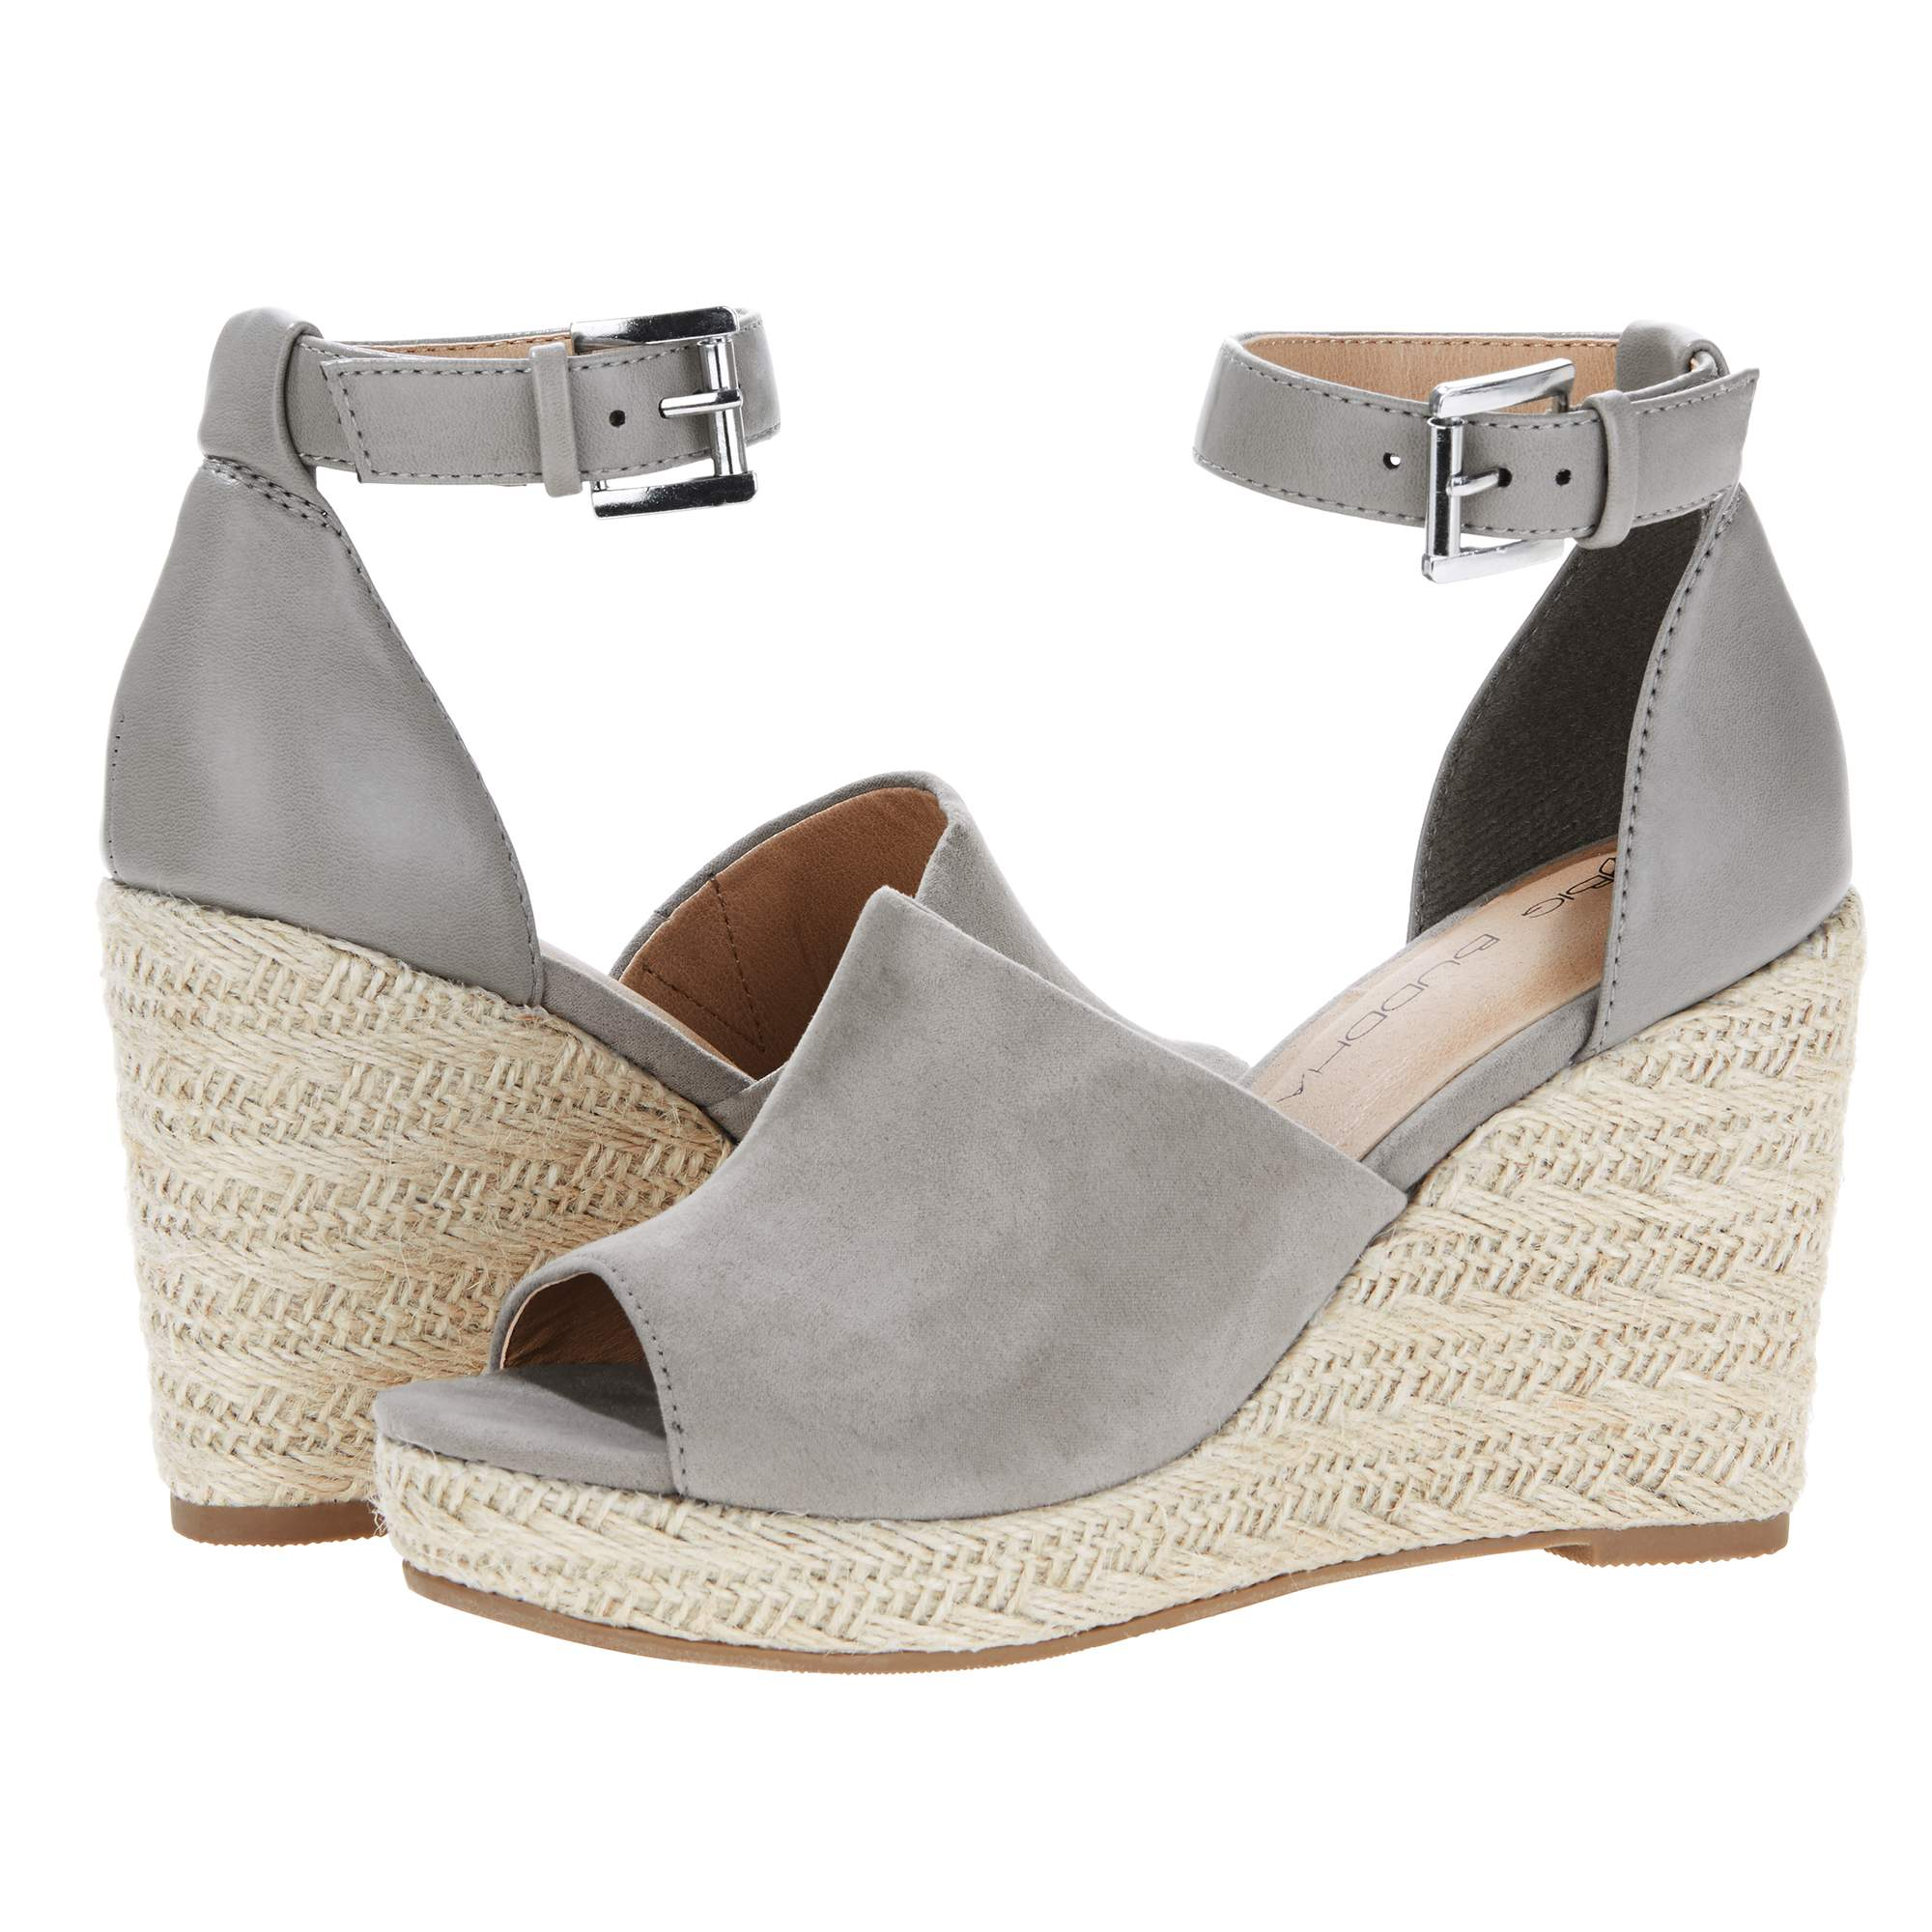 Big Buddha Women's Espadrille Wedge